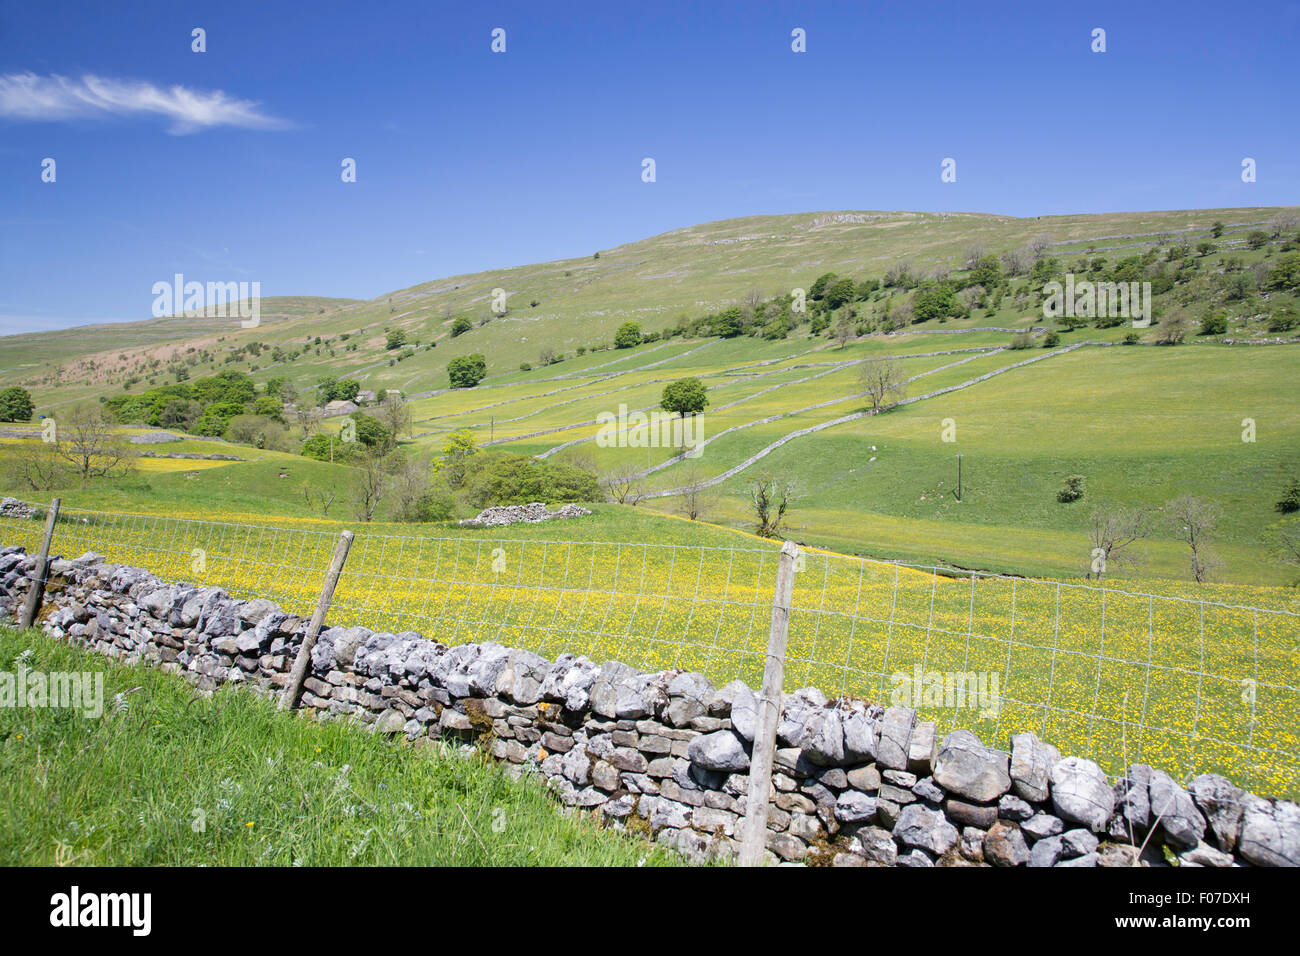 Farming field systems in Upper Wharfdale, ' Yorkshire Dales National Park, England, UK - Stock Image